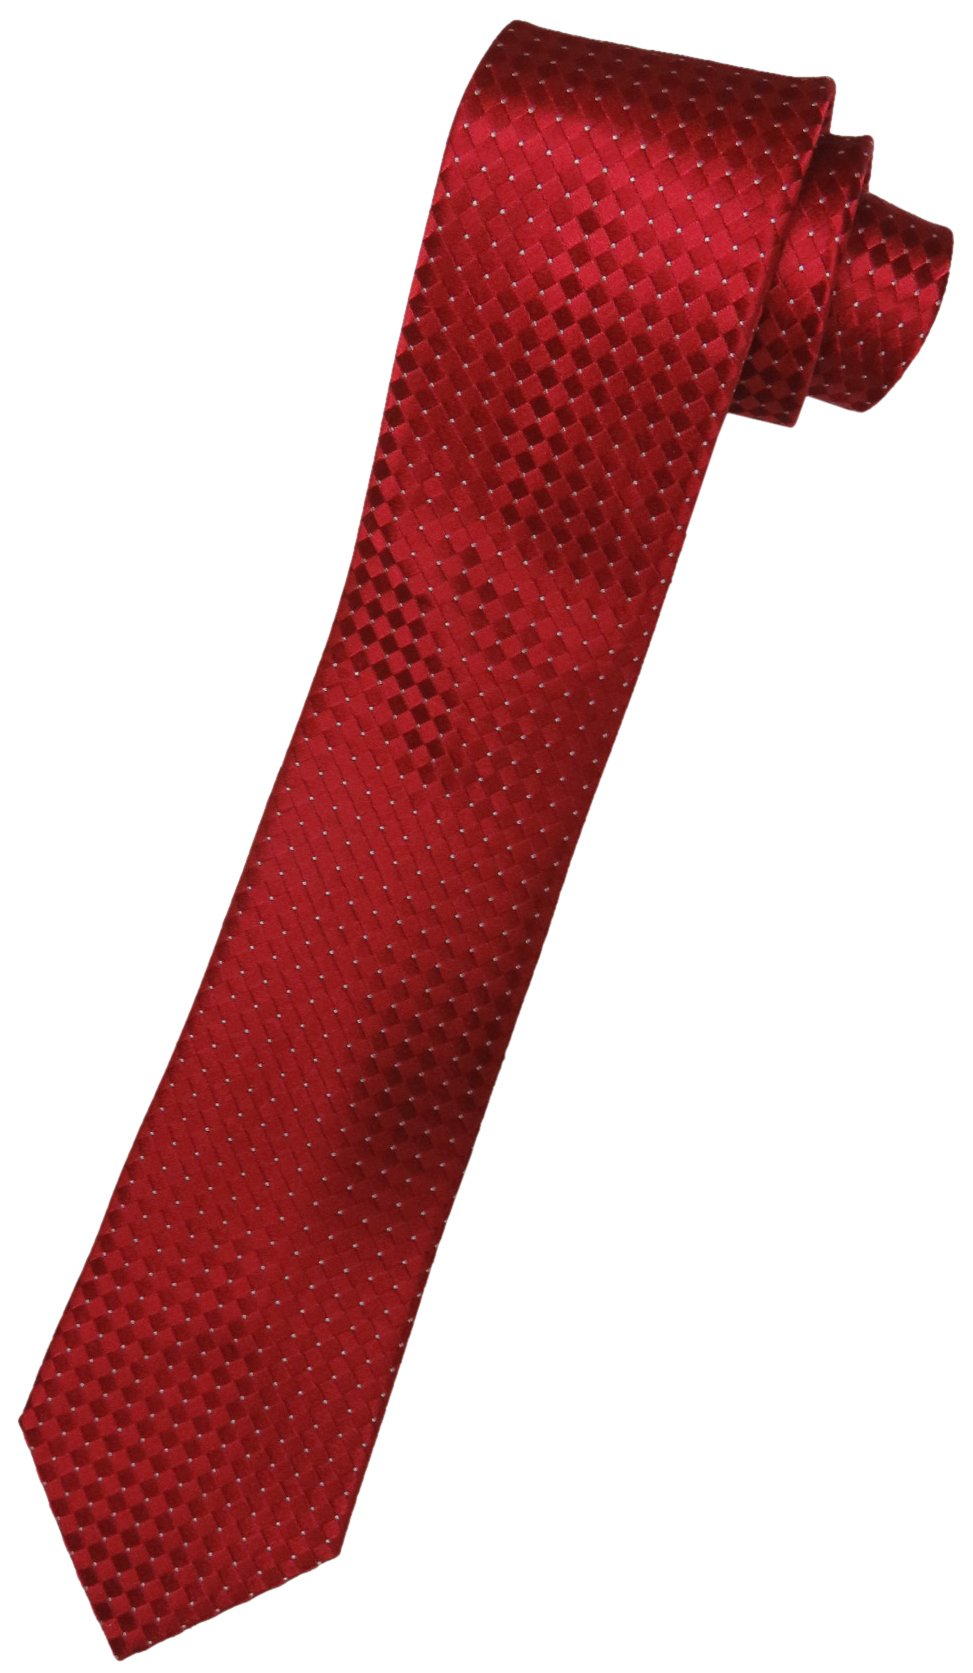 Donald Trump Neck Tie Red and Silver Diamond Pattern